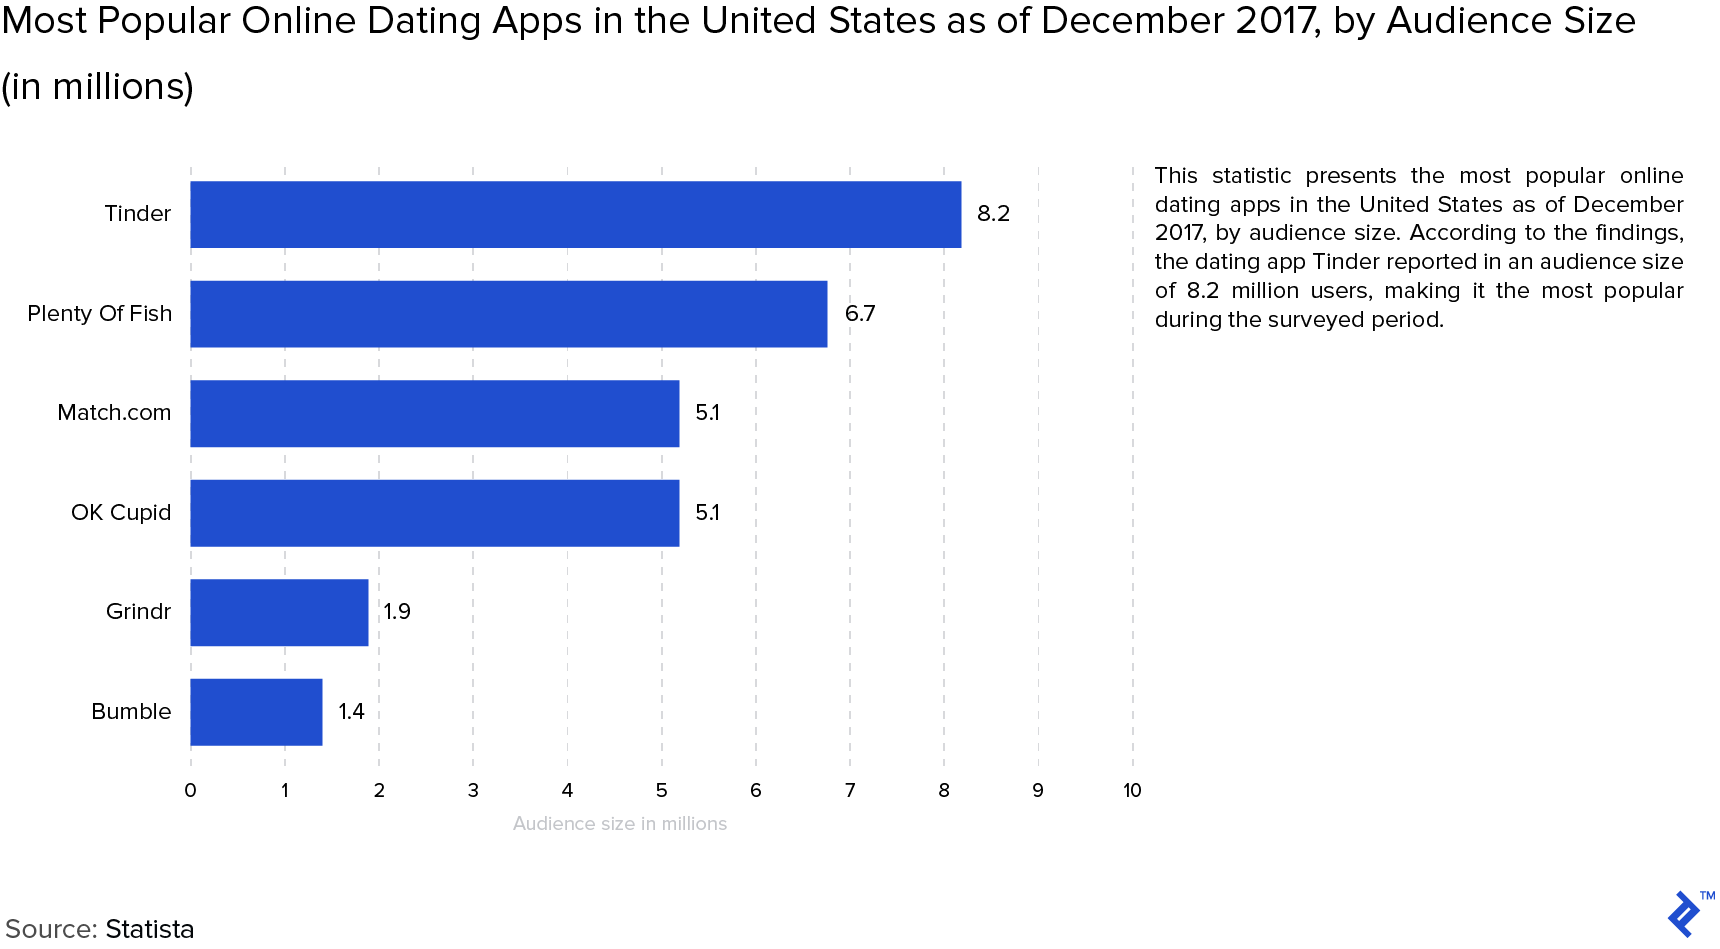 Where are the most users for top dating apps